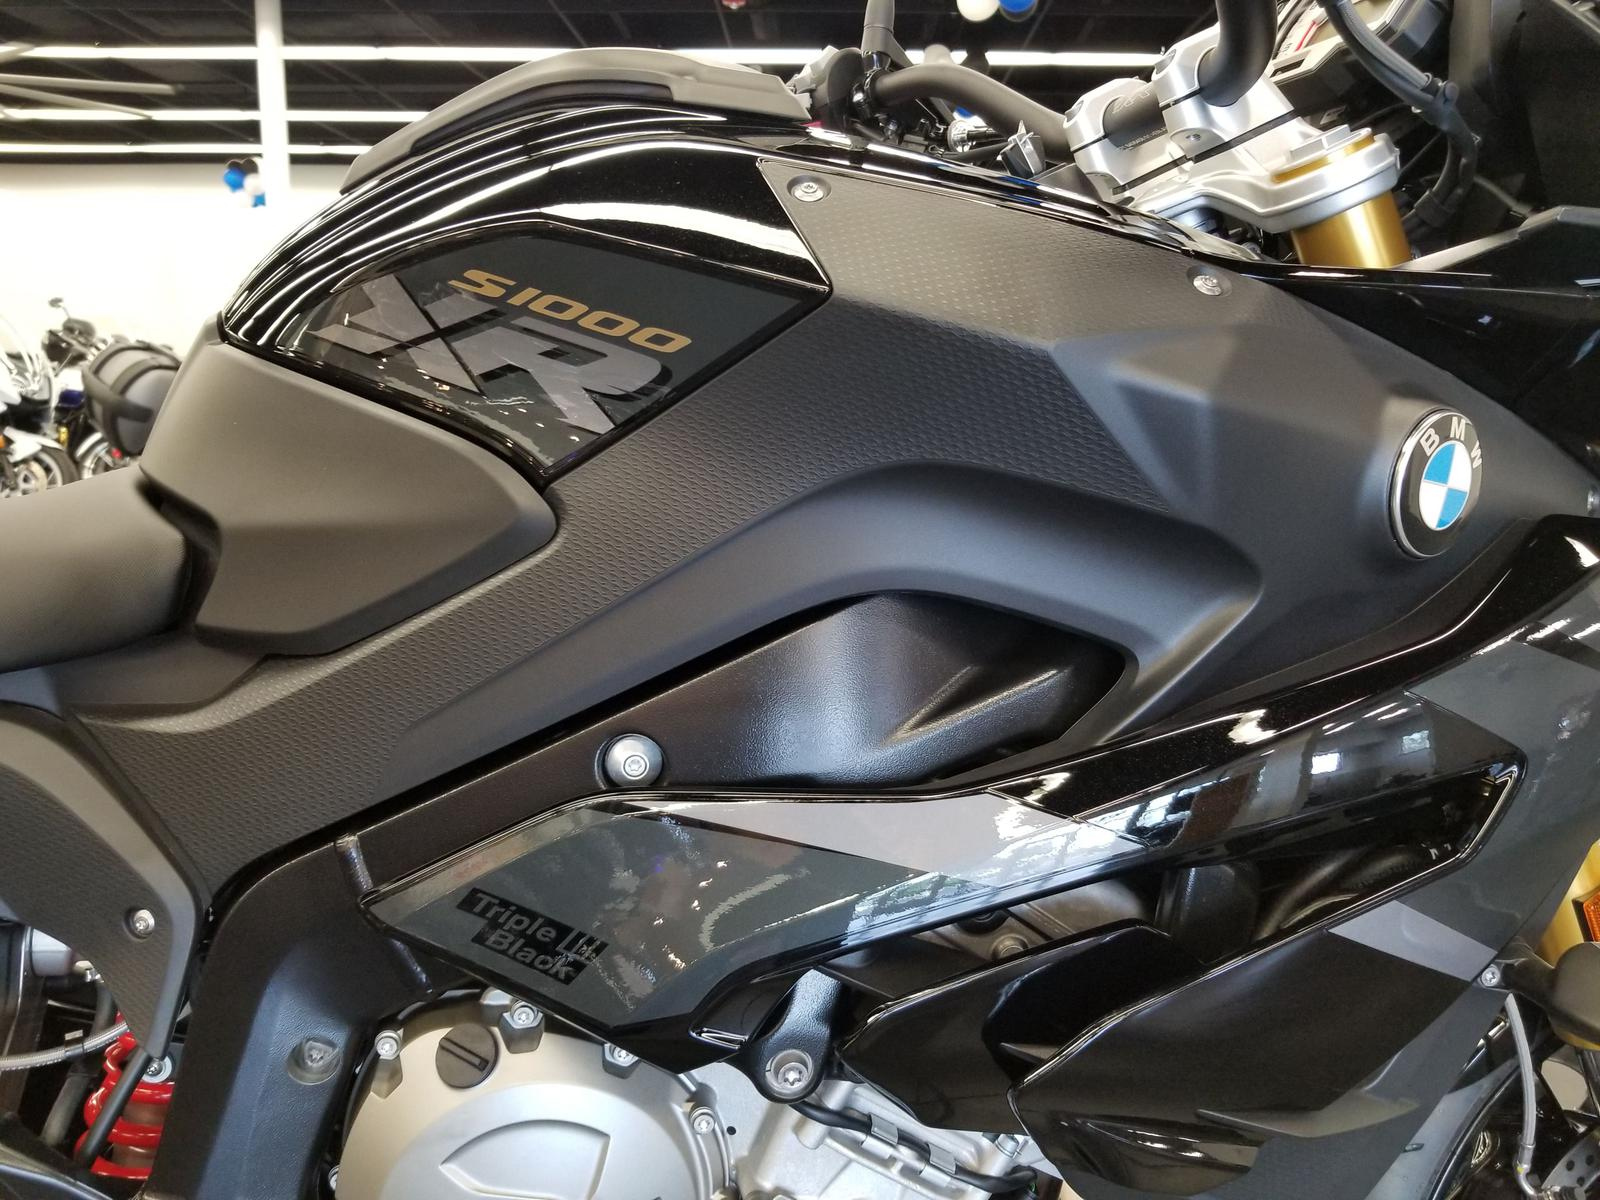 2019 Bmw S 1000 Xr Triple Black For Sale In Fort Myers Fl Gulf